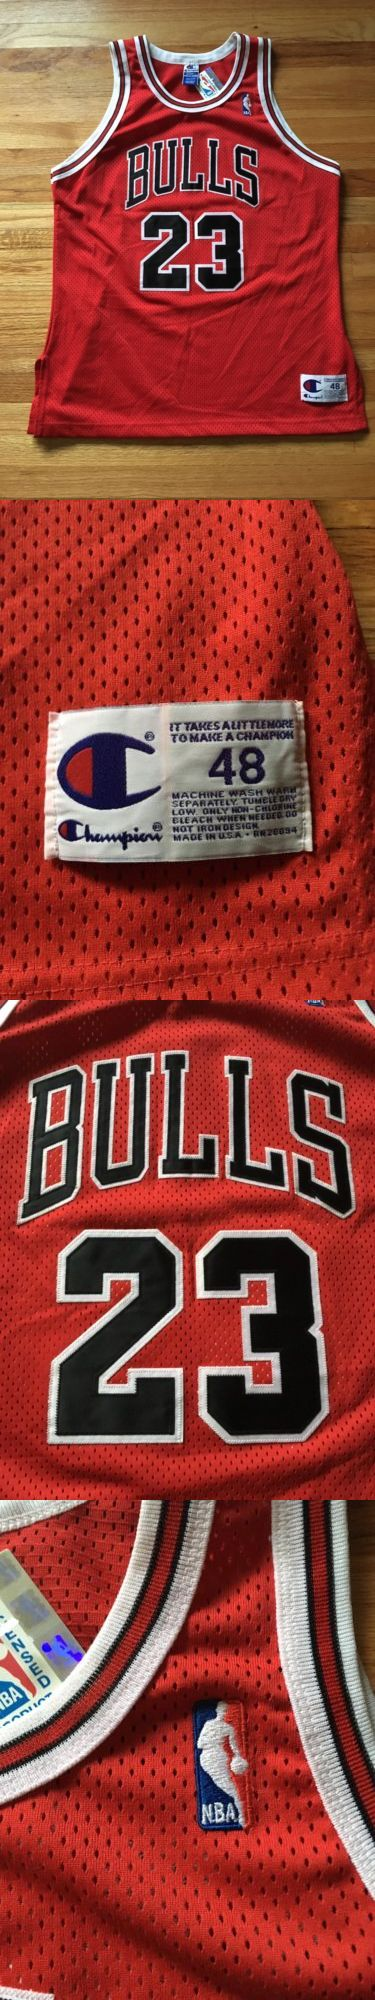 Basketball-NBA 24442: Champion Authentic Jordan Bulls Jersey Size 48 Nwt Pippen Chicago -> BUY IT NOW ONLY: $325 on eBay!